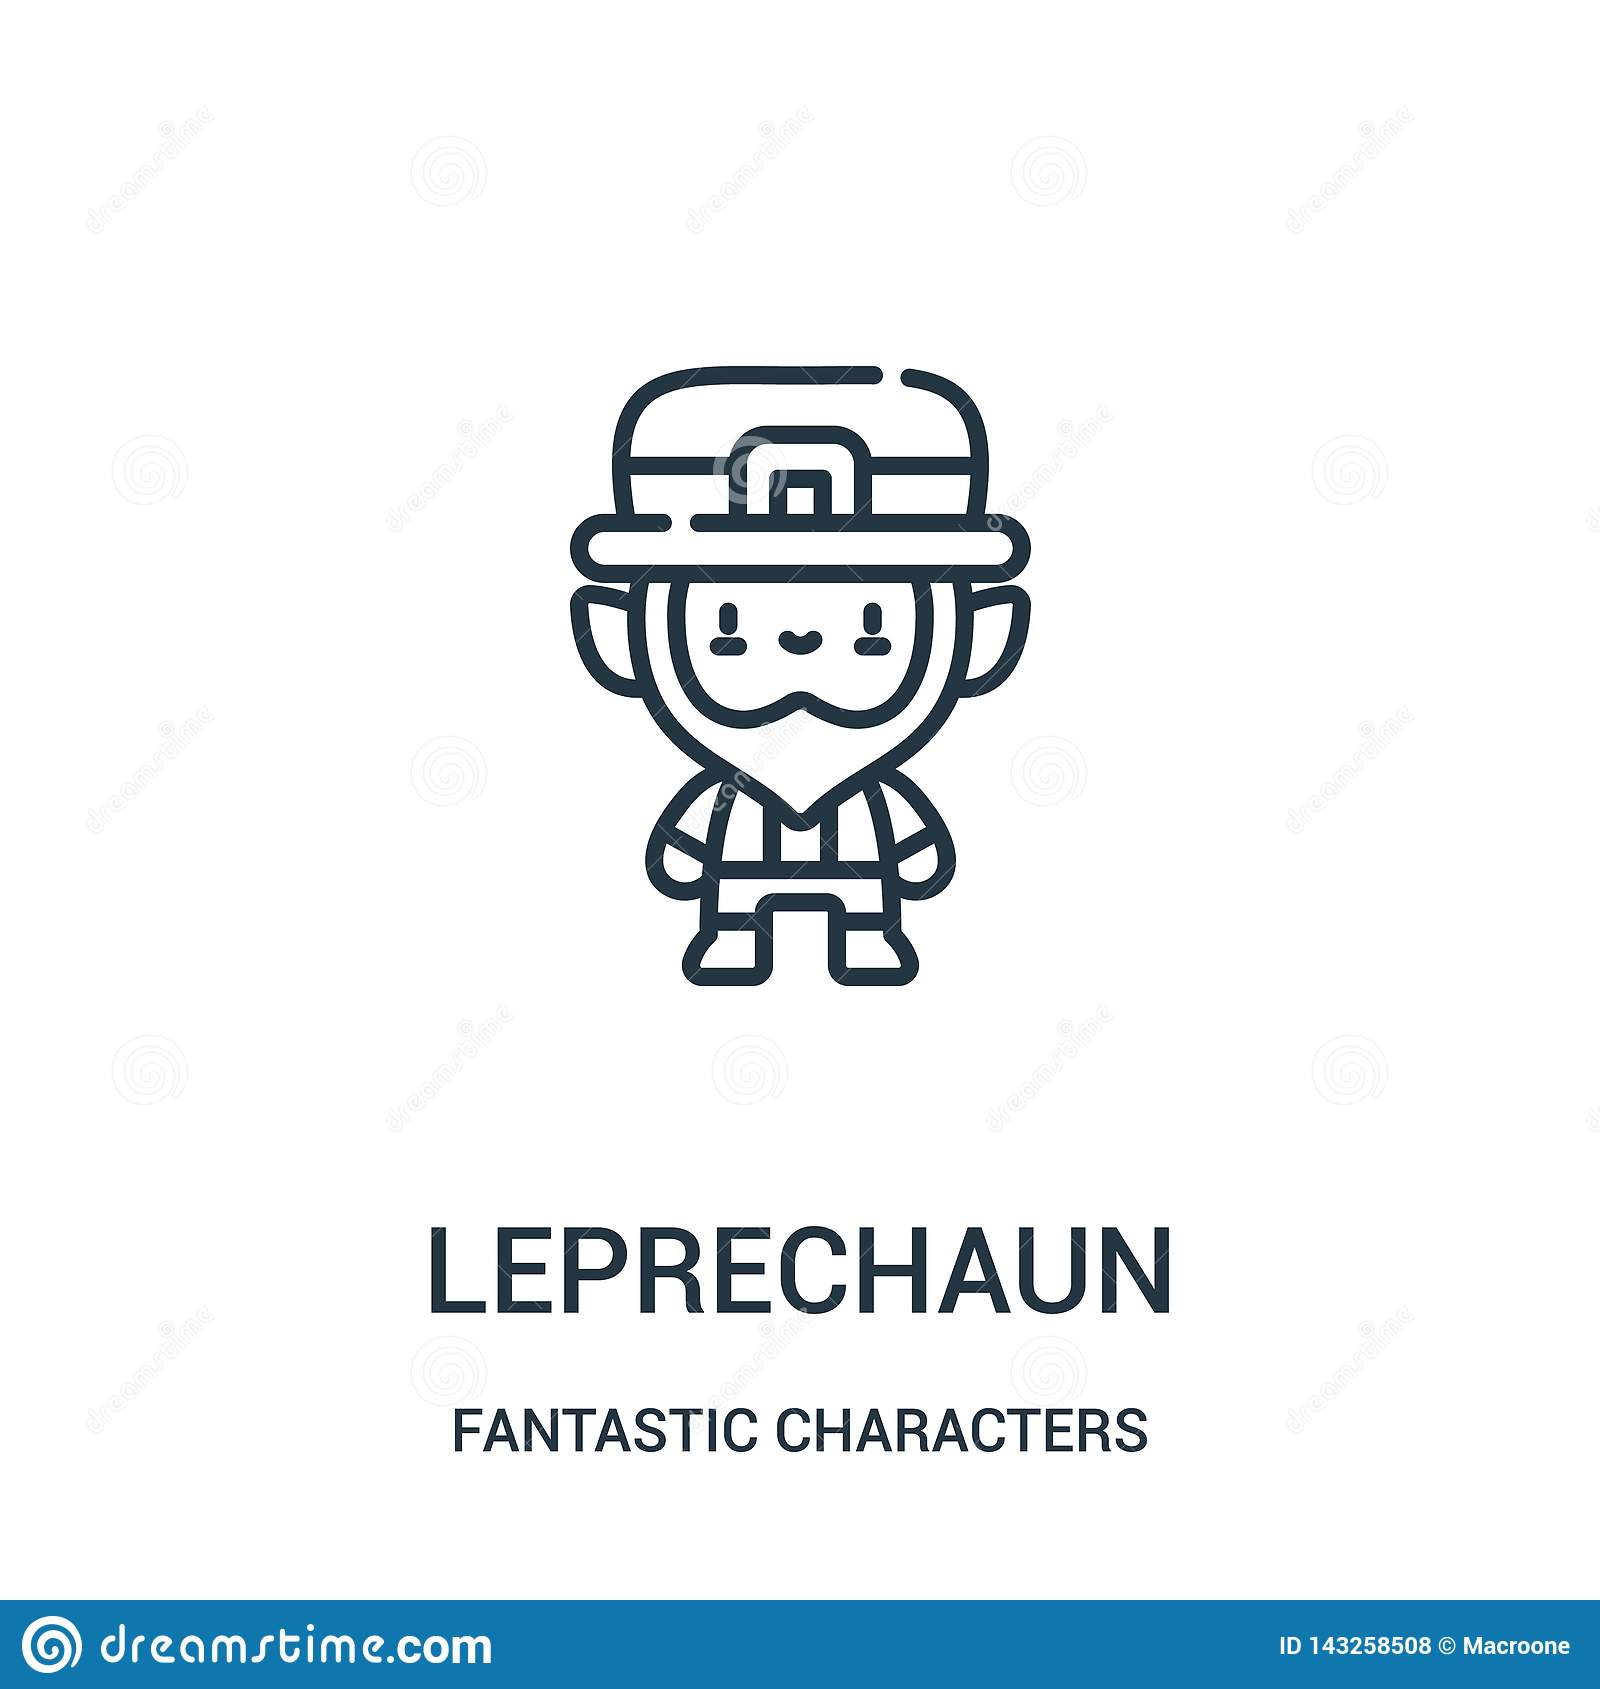 leprechaun icon vector from fantastic characters collection. Thin line leprechaun outline icon vector illustration